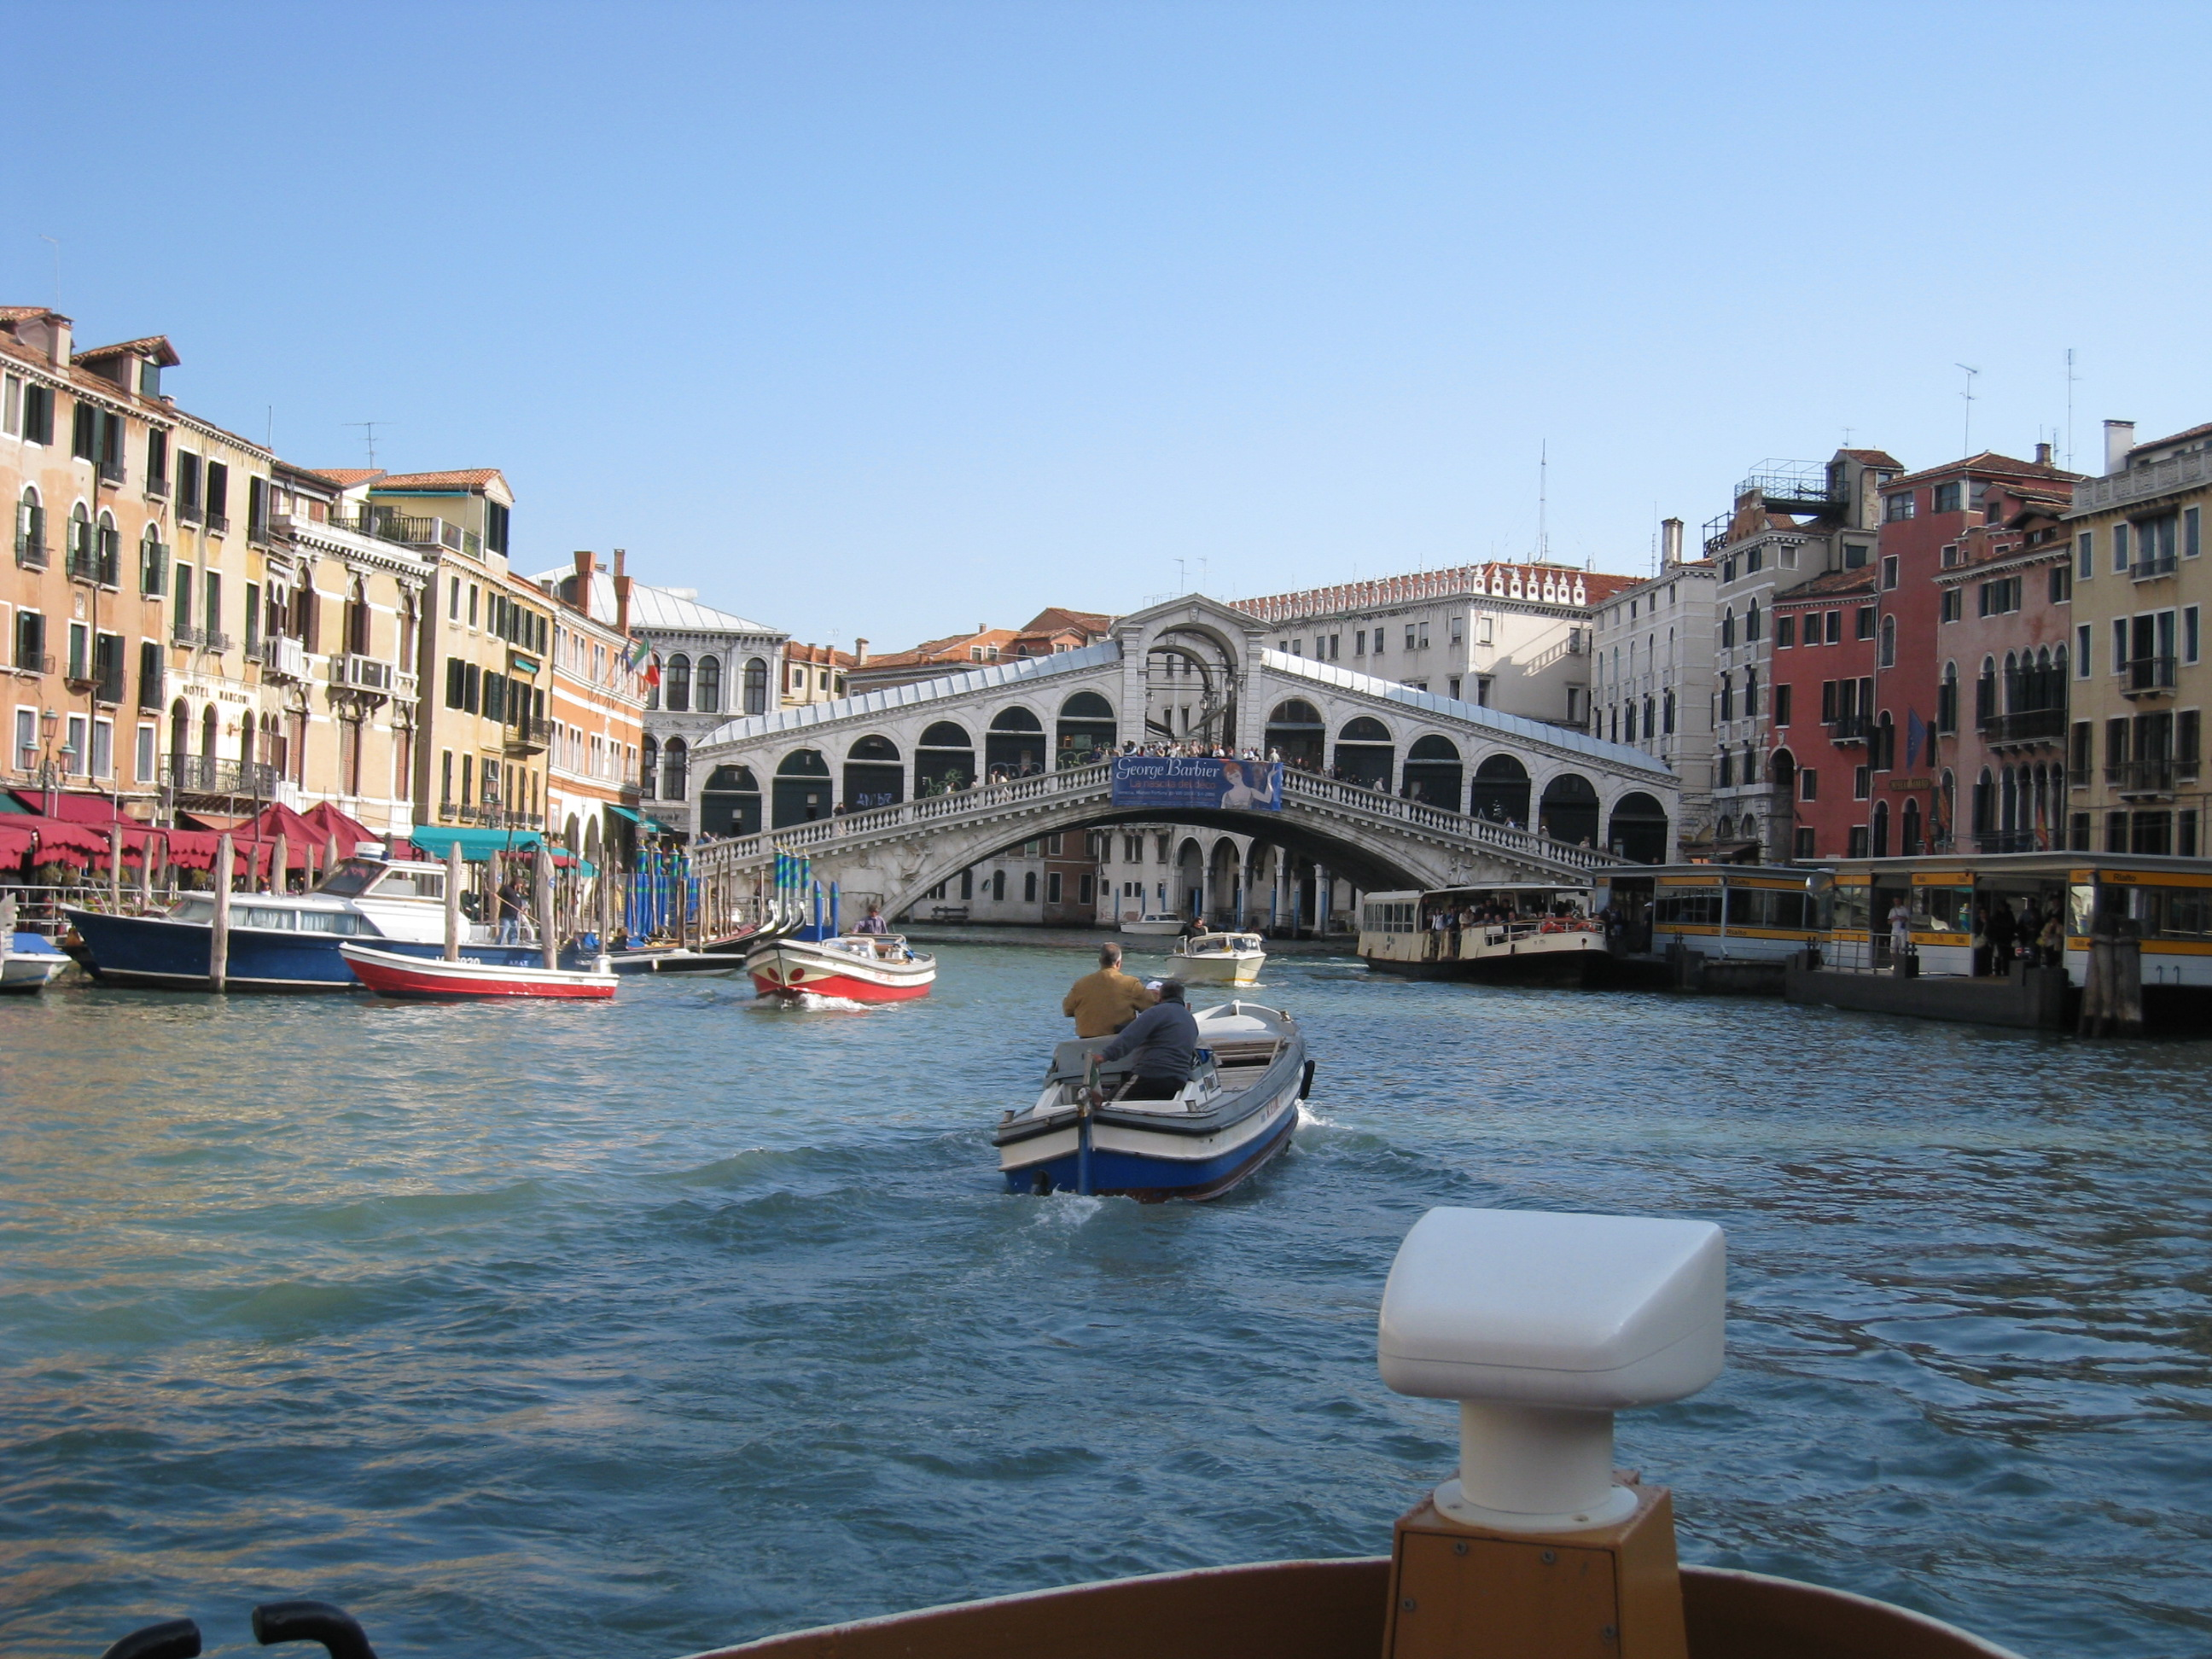 The Grand Canal Hotel